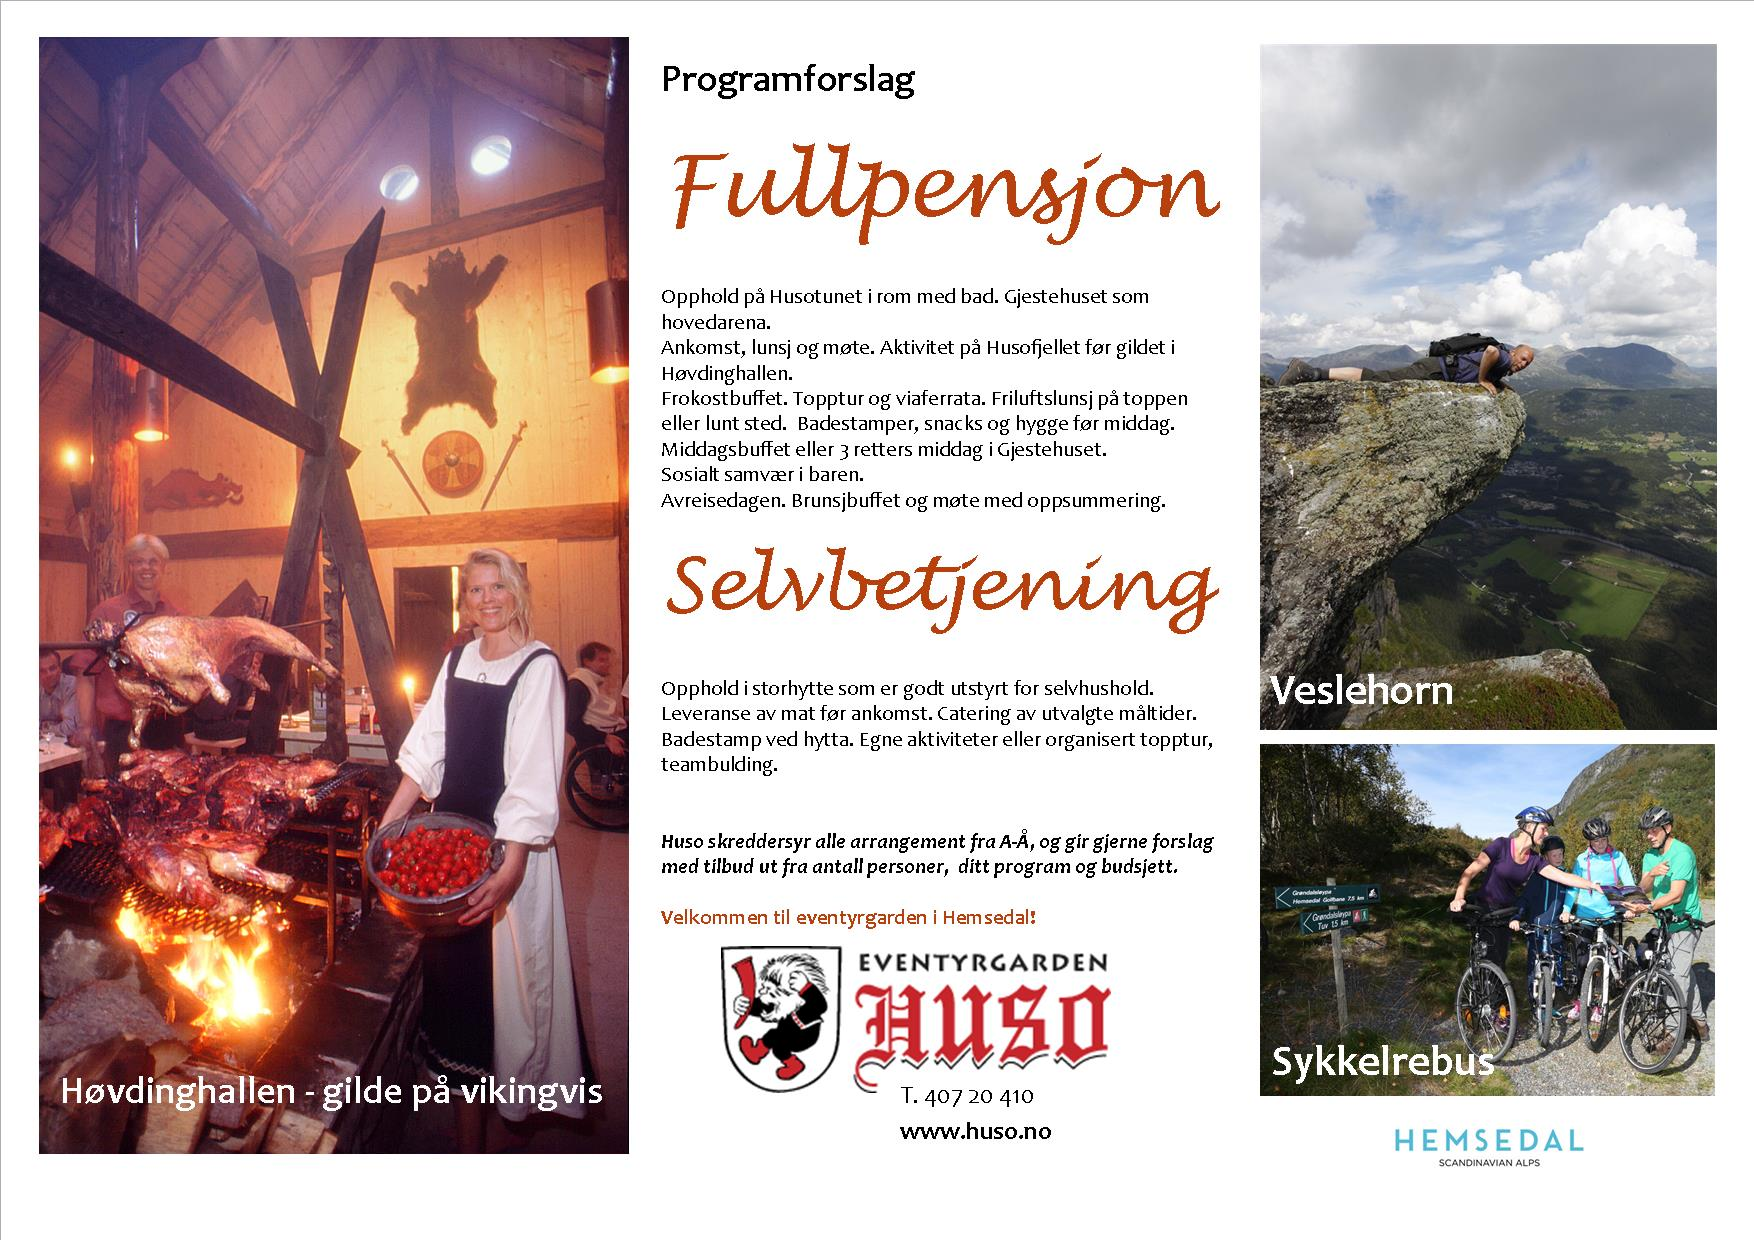 Firmaarrangement med fullpensjon eller self catering på Eventyrgarden Huso